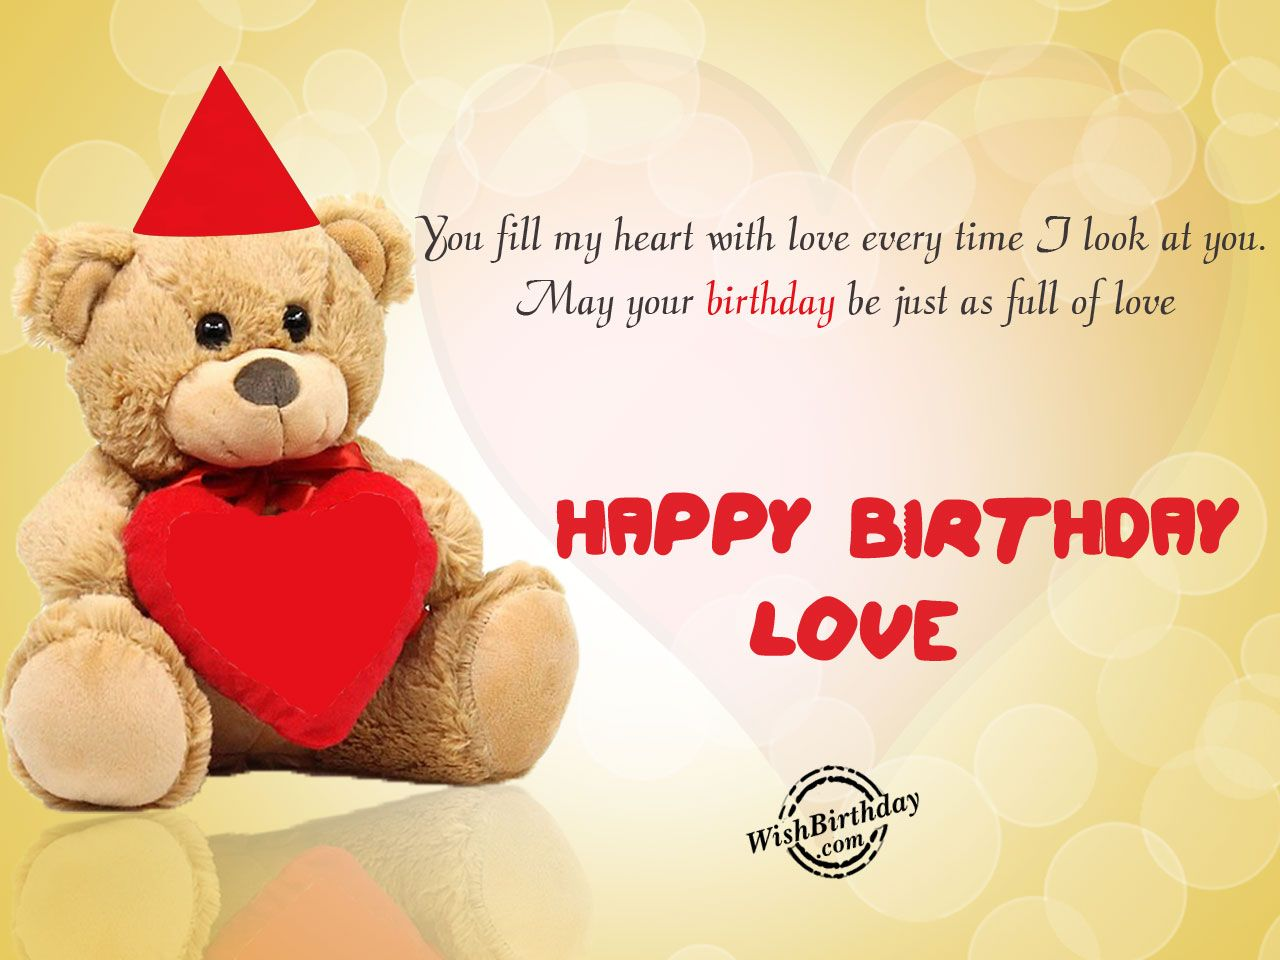 May your birthday be just as full of love happy birthday